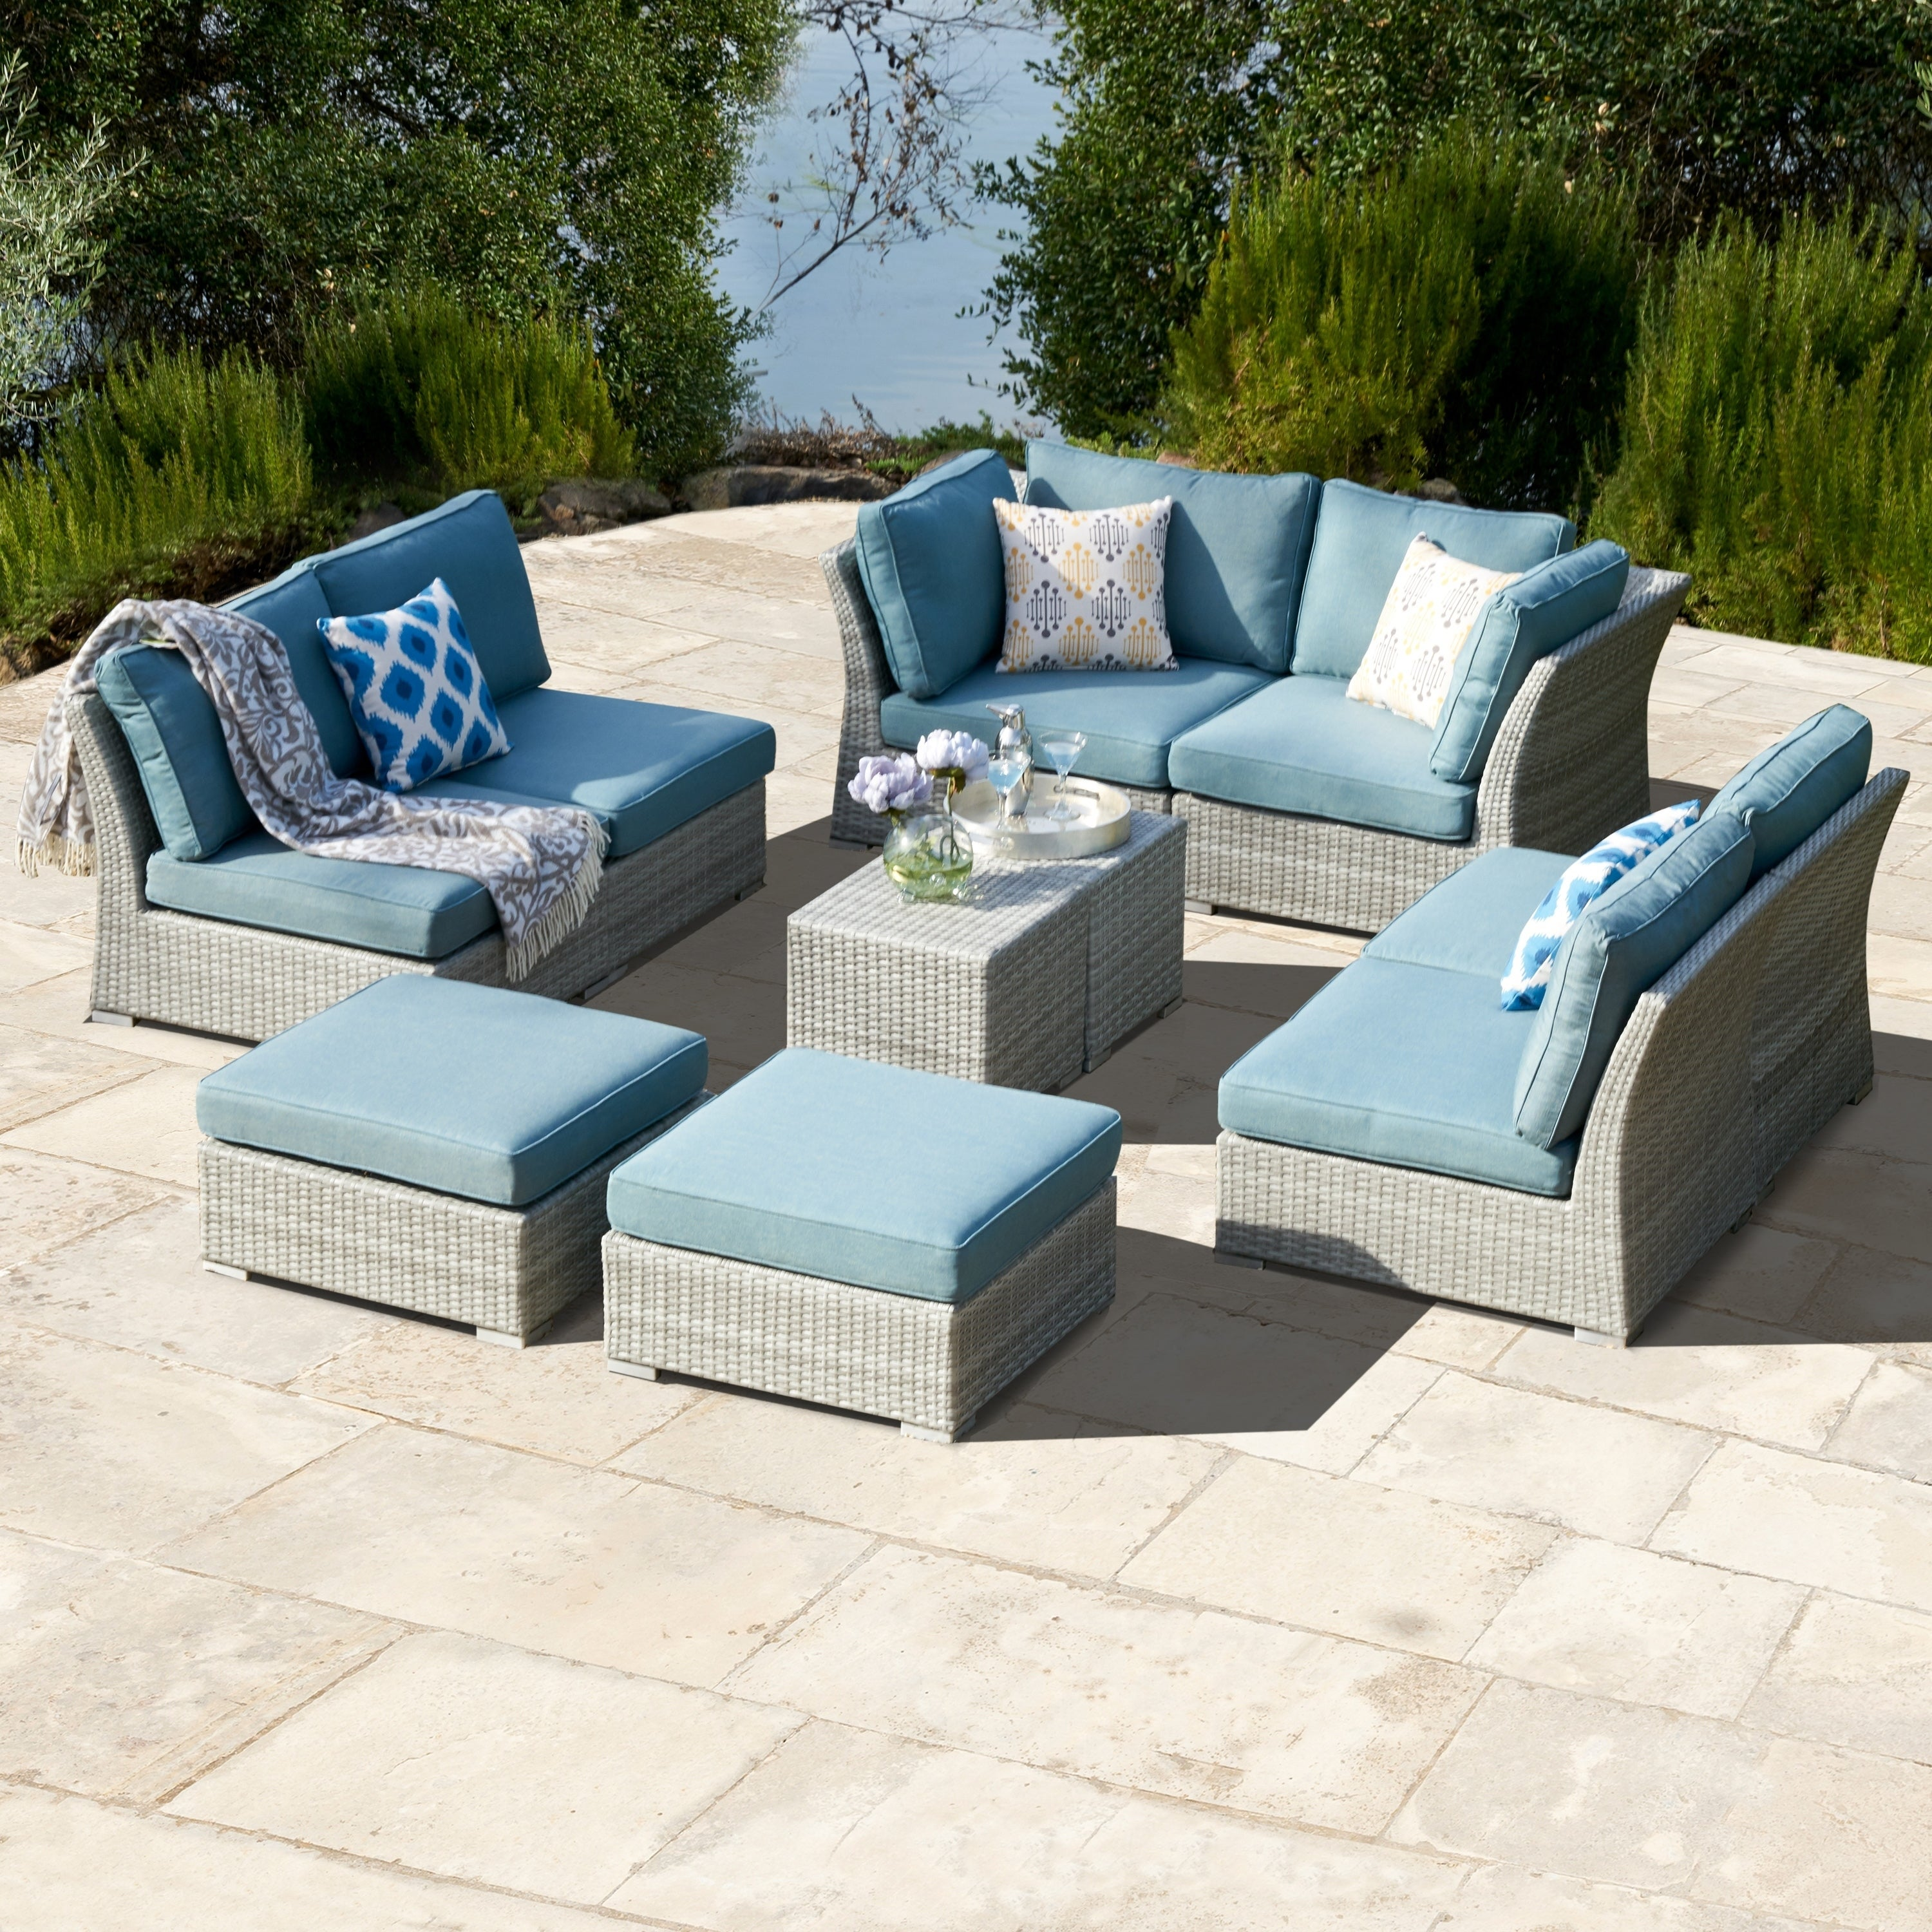 Charmant Shop Corvus 10 Piece Grey Wicker Patio Furniture Set With Blue Cushions    On Sale   Free Shipping Today   Overstock.com   17158238